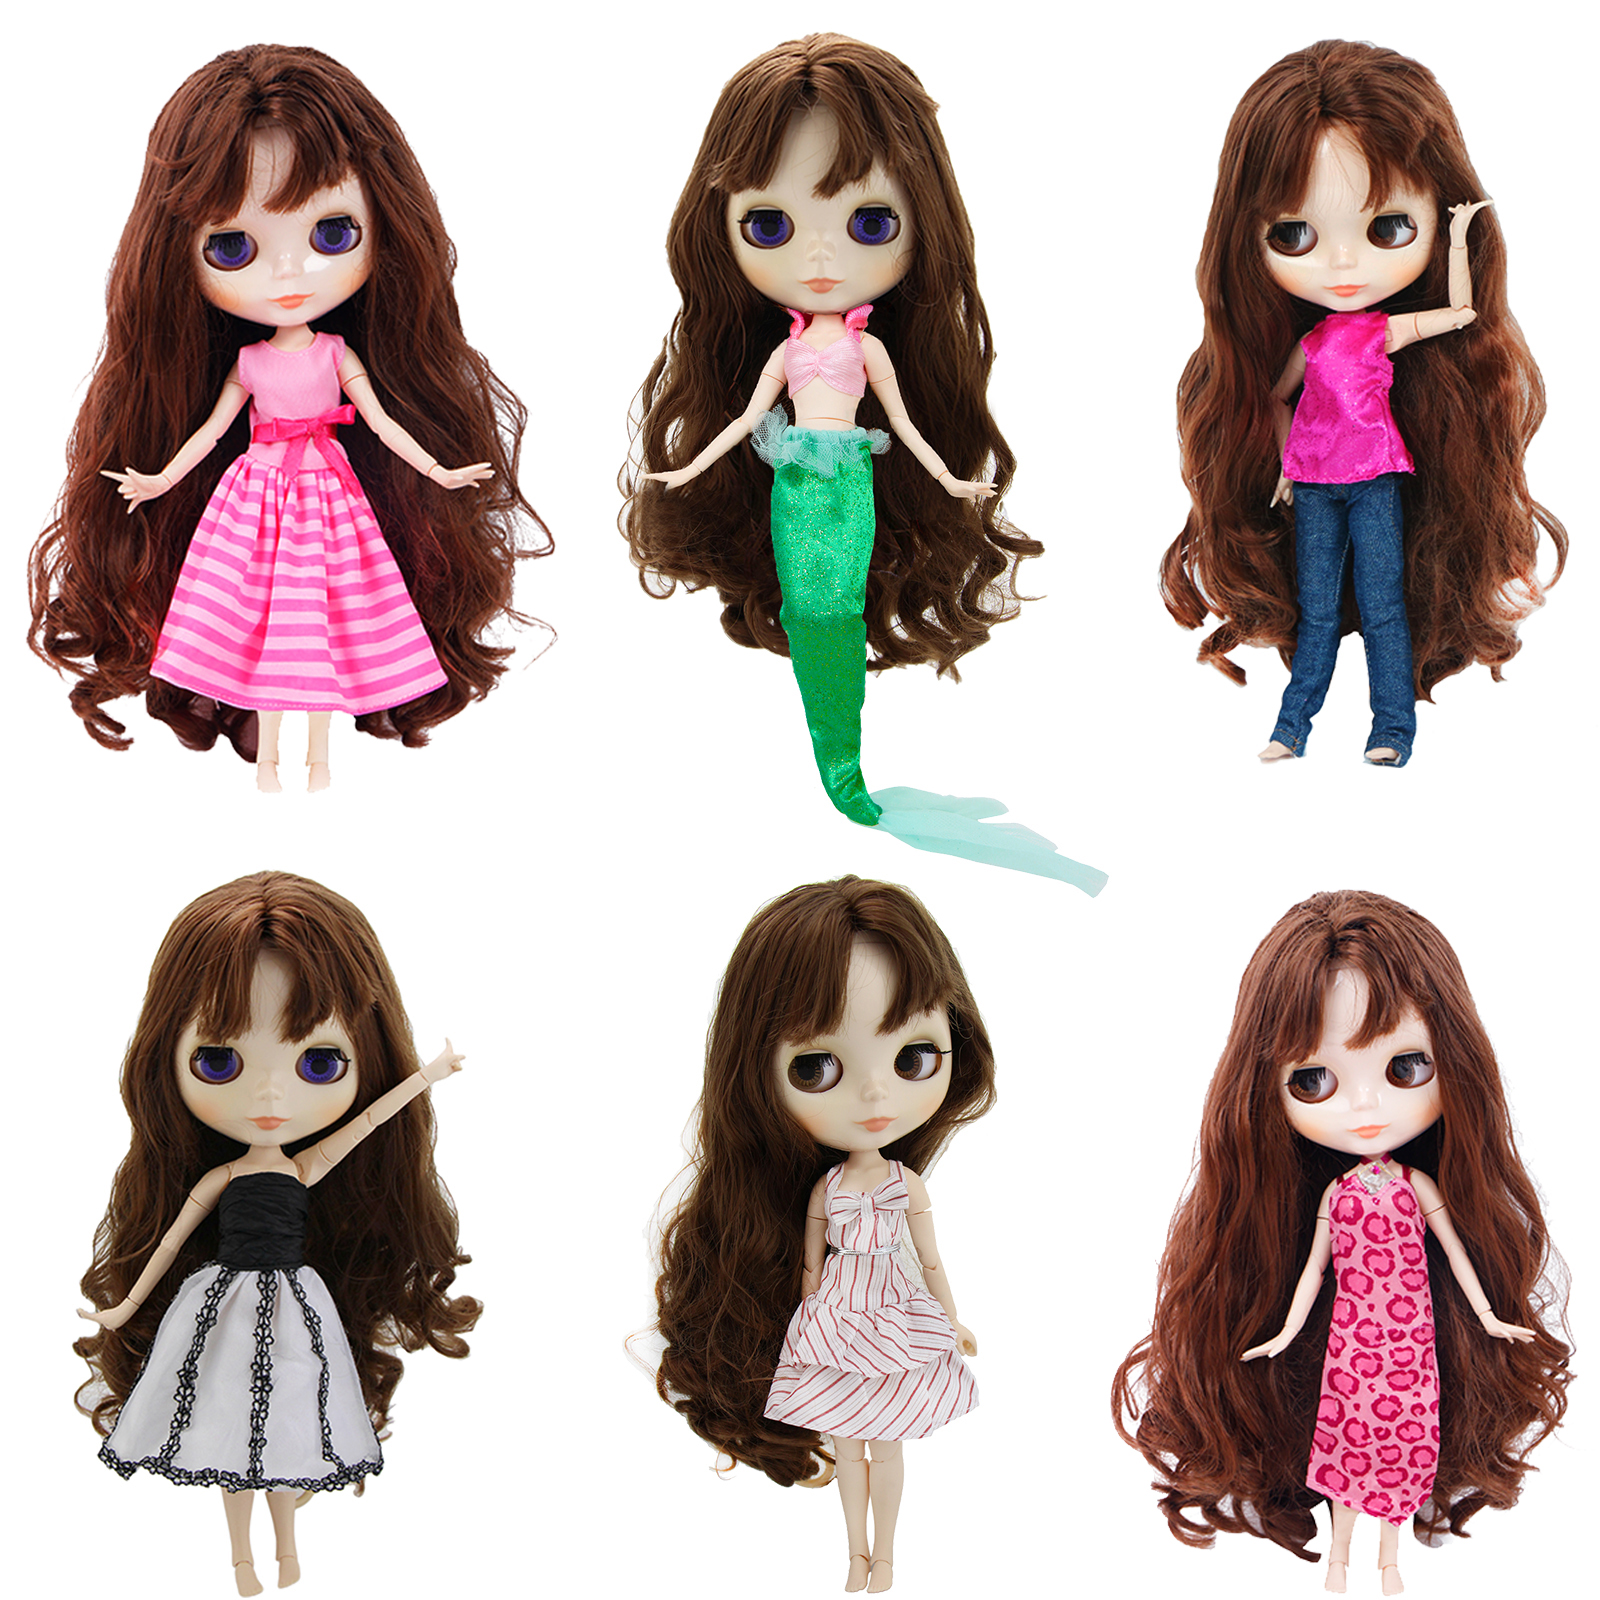 Random 1 Set Cute Daily Mini Dress Casual Outfits Skirt Clothes For Blythe Doll House Girl Toy